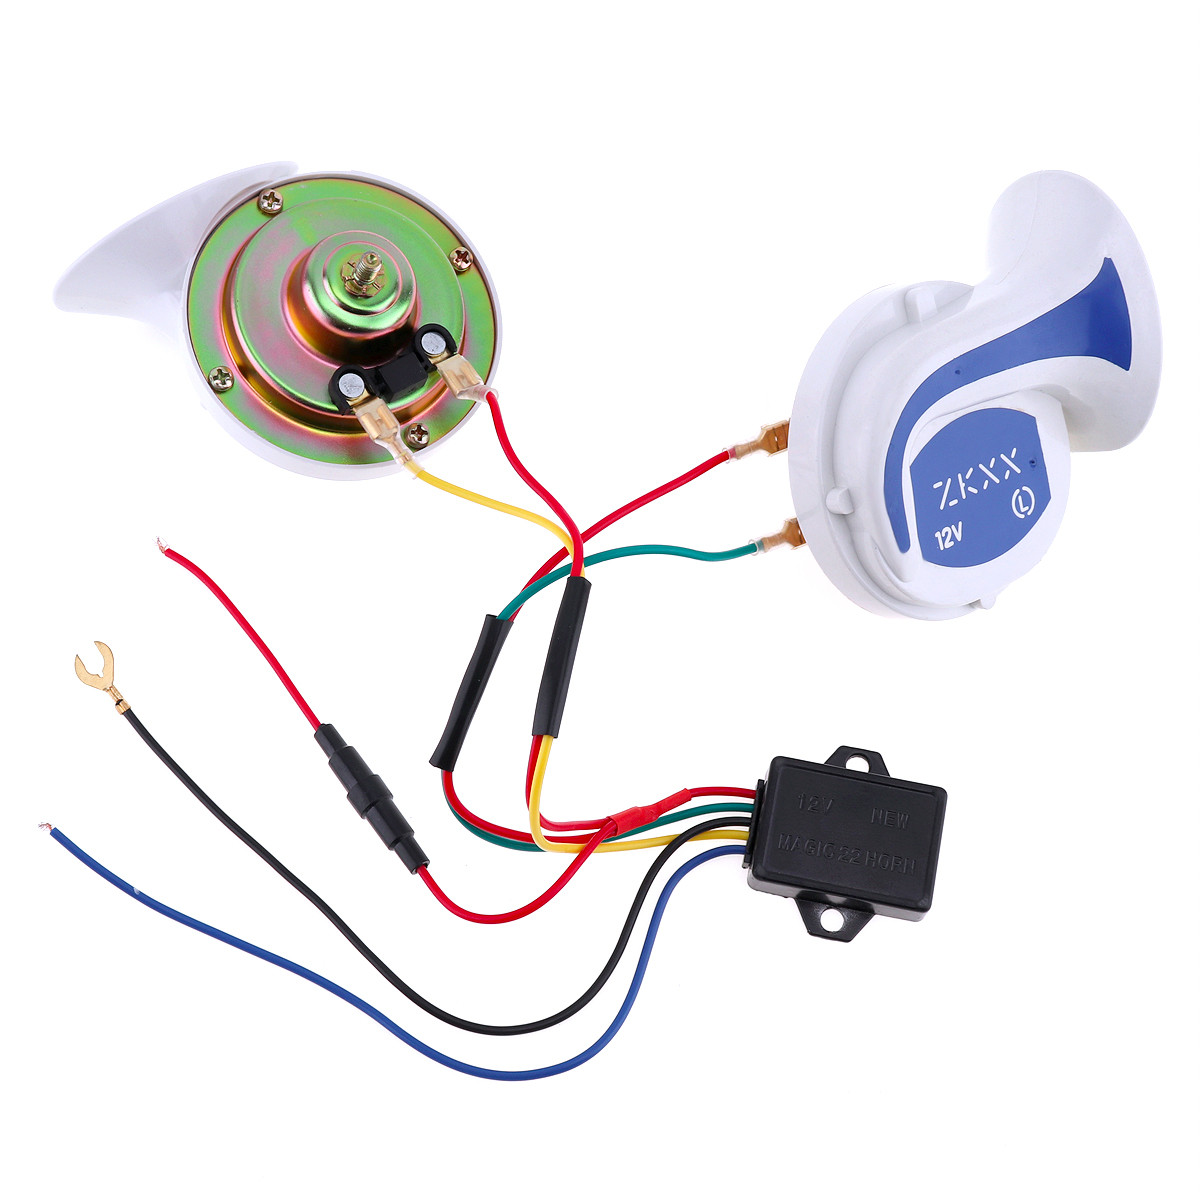 12v 150db Loud Classical Snail Shaped Horn Auto Car Speaker Tone Siren Police Circuit V8 360 Degree Radar Detectors For Fixed Voice Alarm Speed Control Safety Vehicle